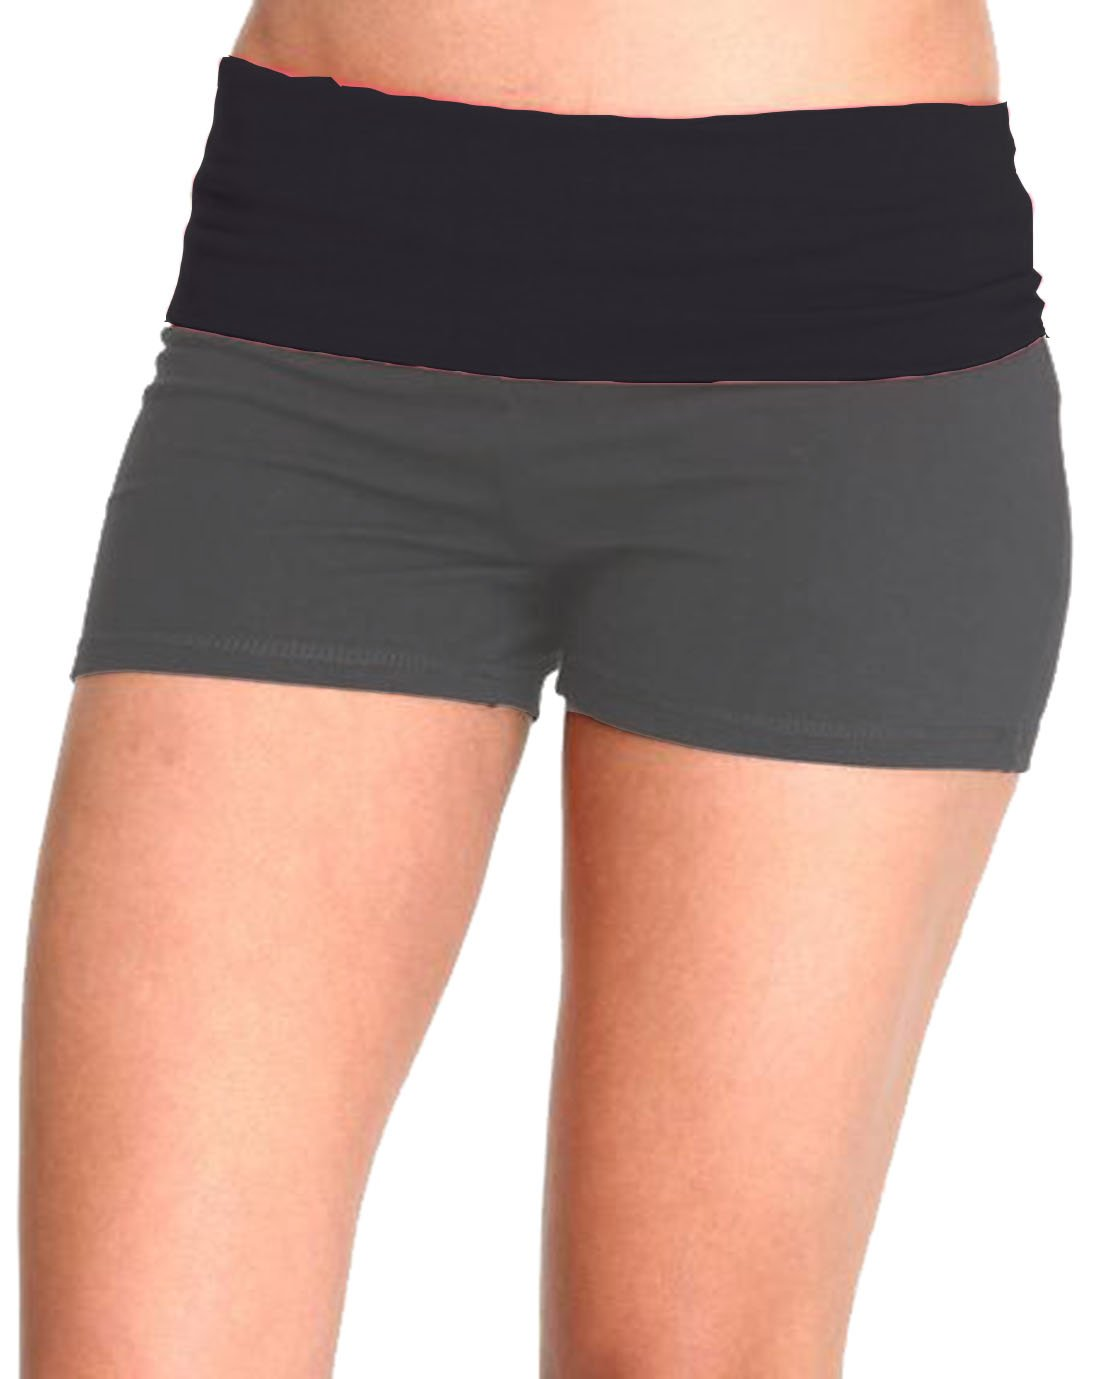 Waist Band Contrast Yoga Fold Over Shorts (Small, Black & Charcoal Body)